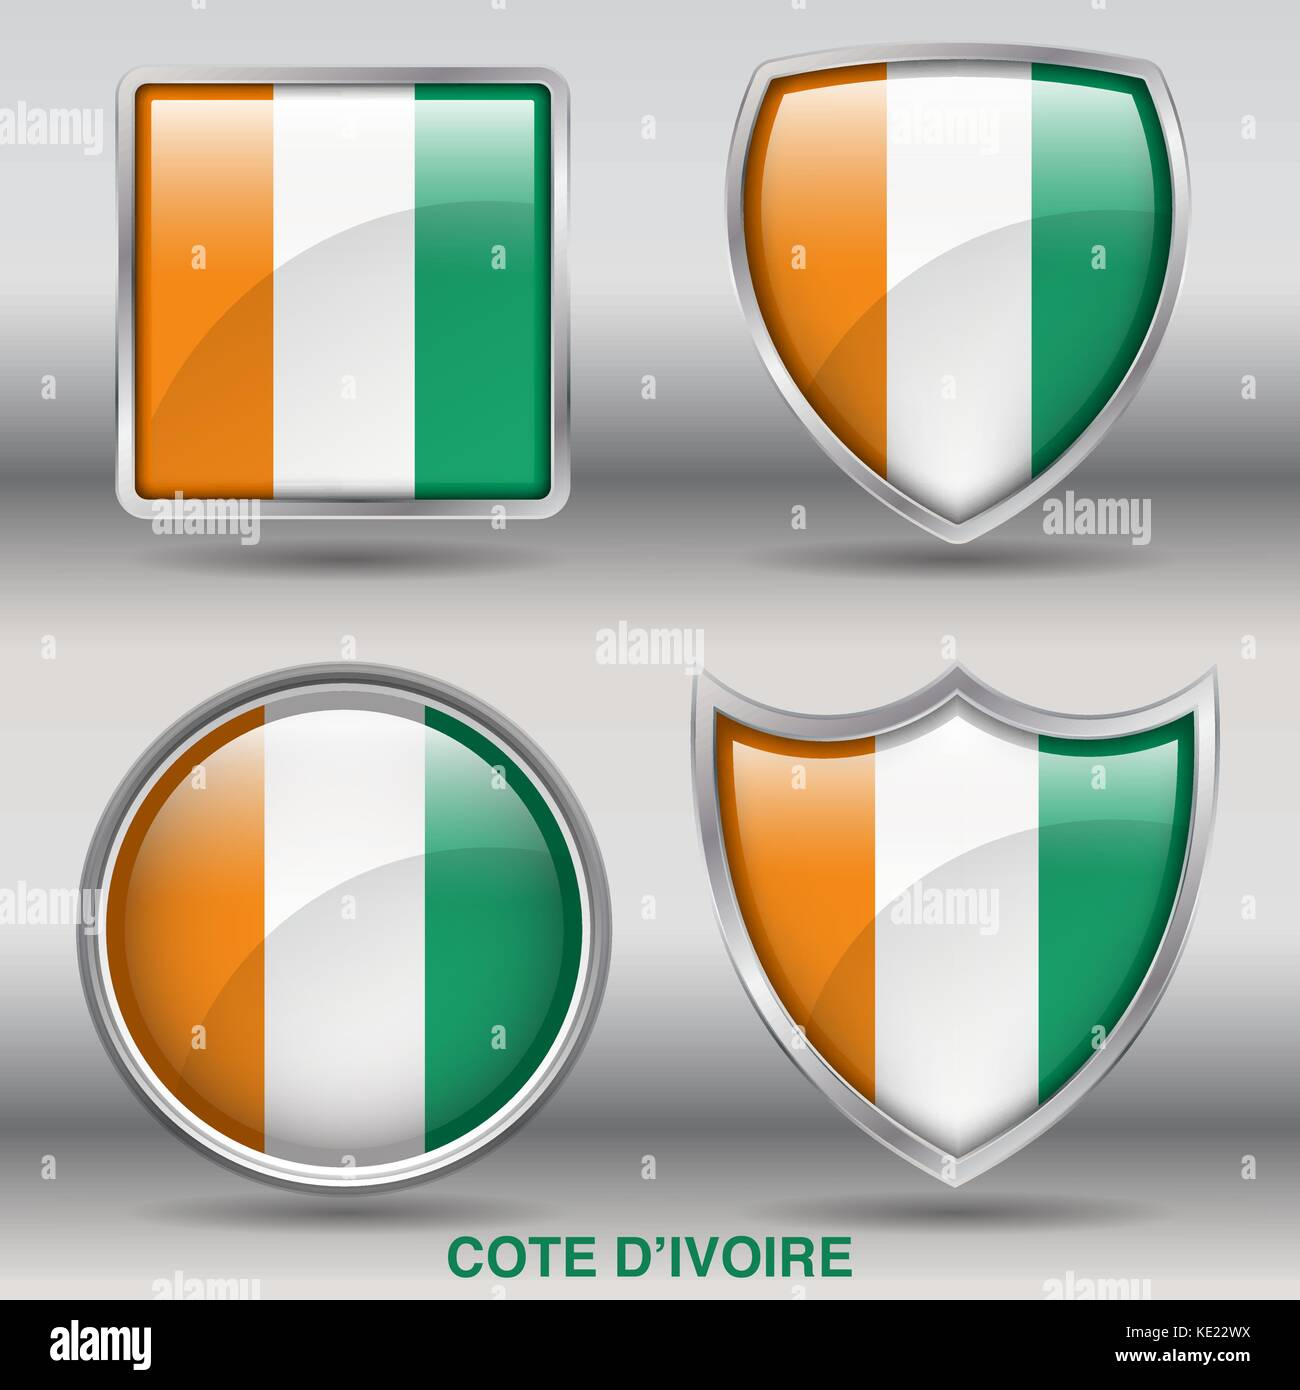 Cote D'Ivoire Flag - 4 shapes Flags States Country in the World with clipping path - Stock Image